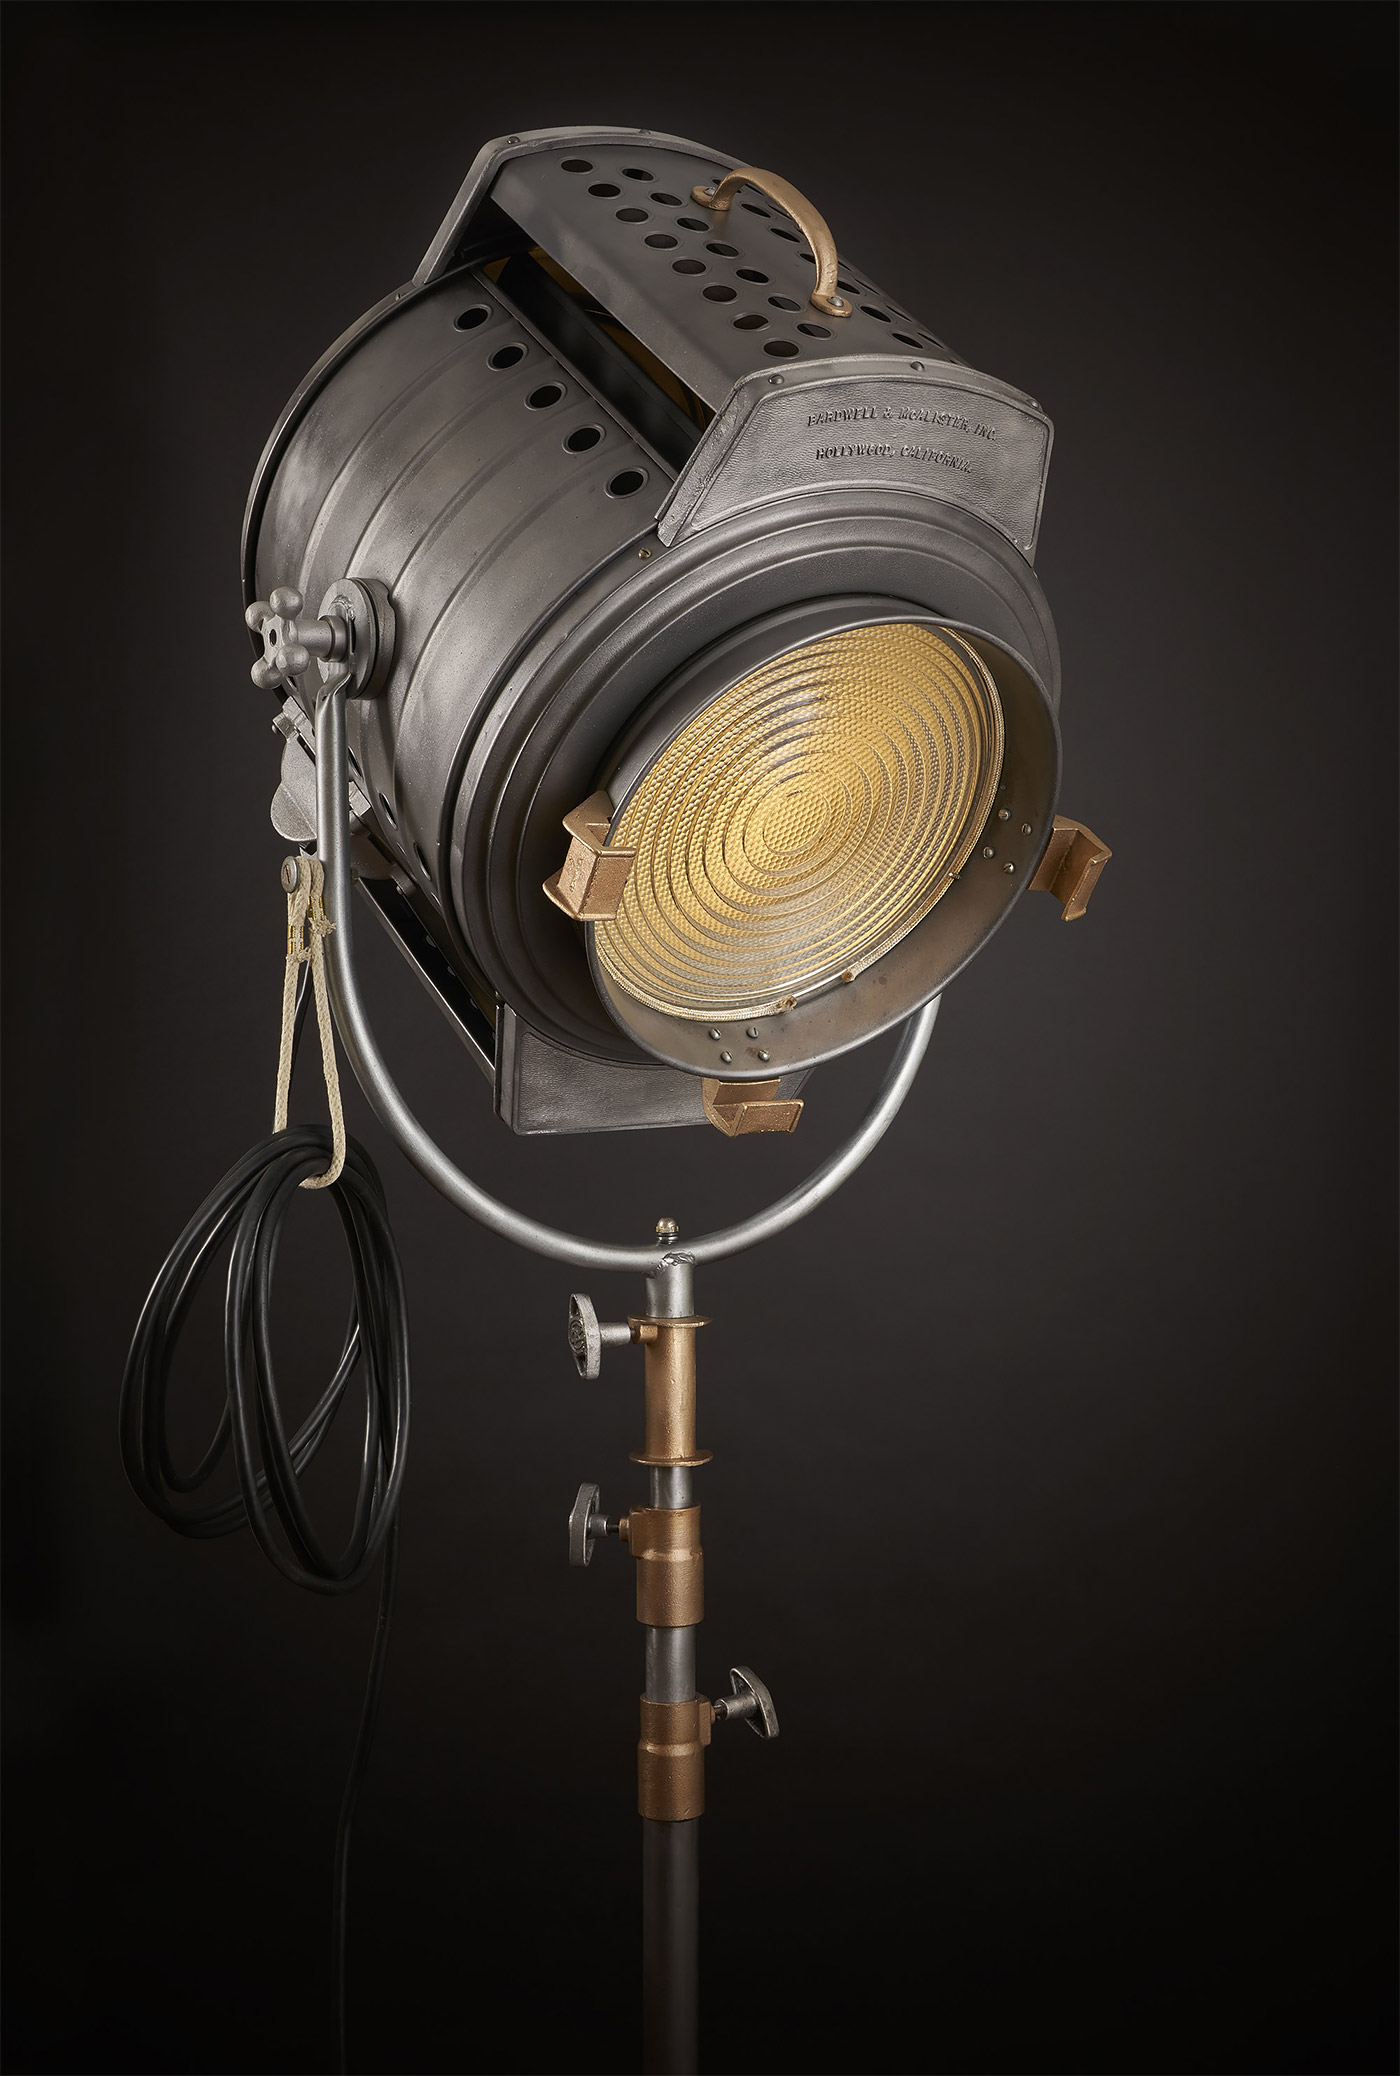 Vintage Hollywood Movie Lights By John